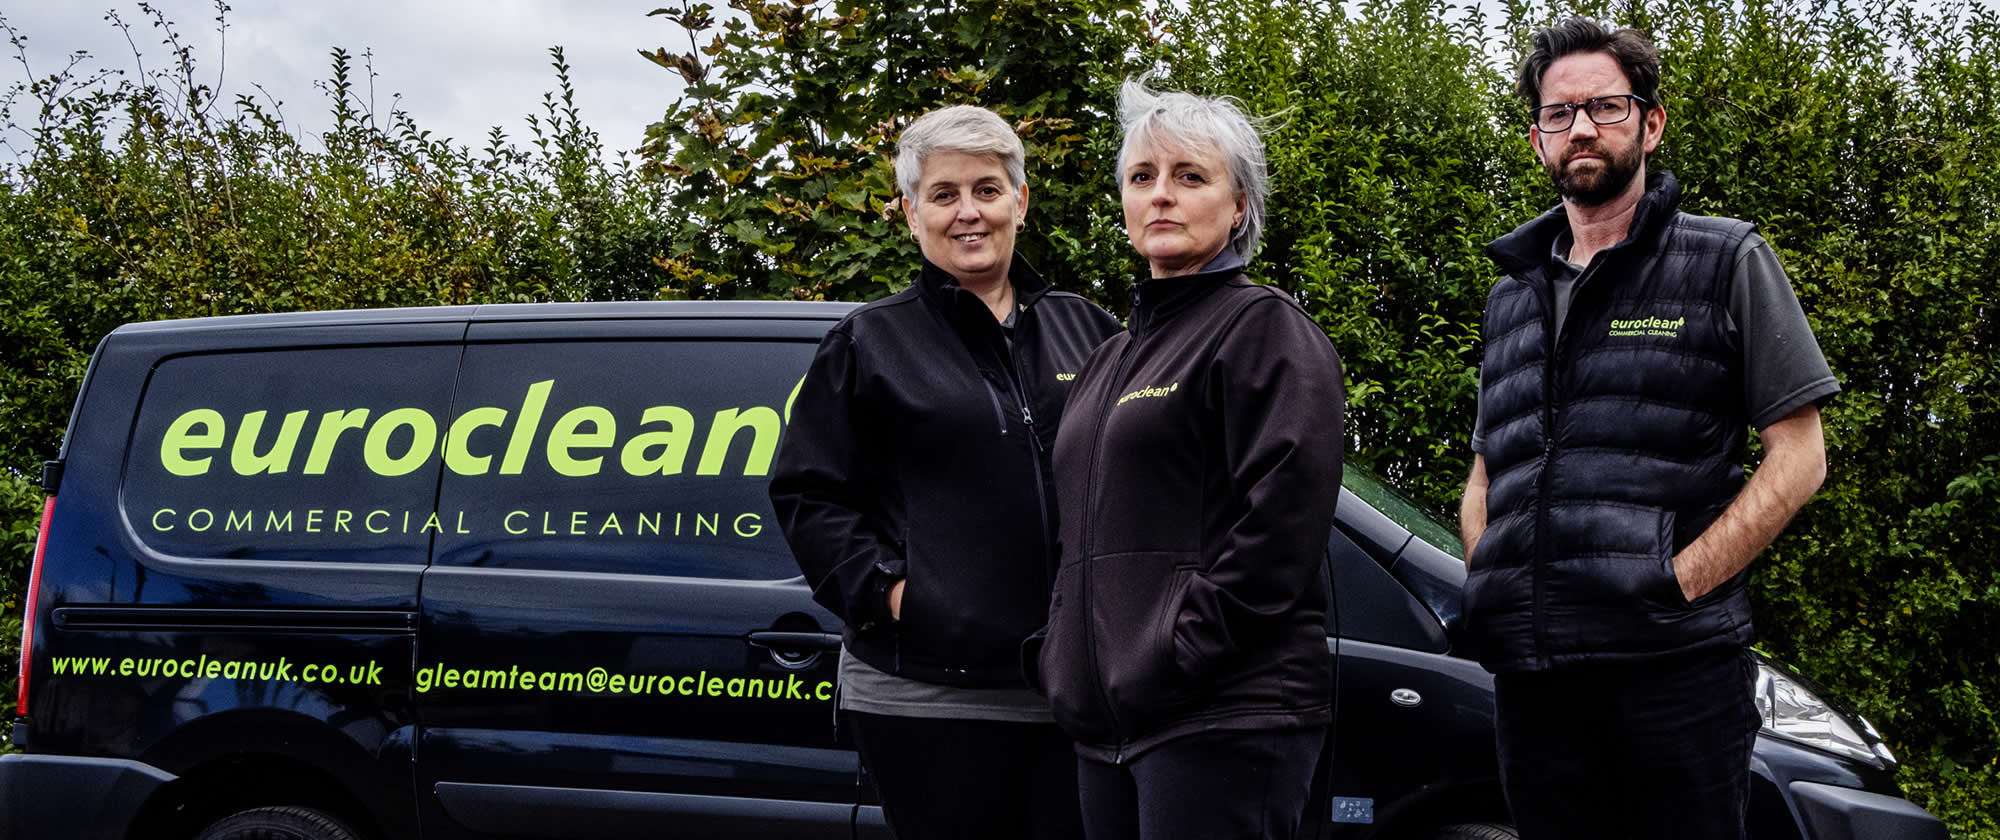 Euroclean Commercial Cleaning in Central Scotland